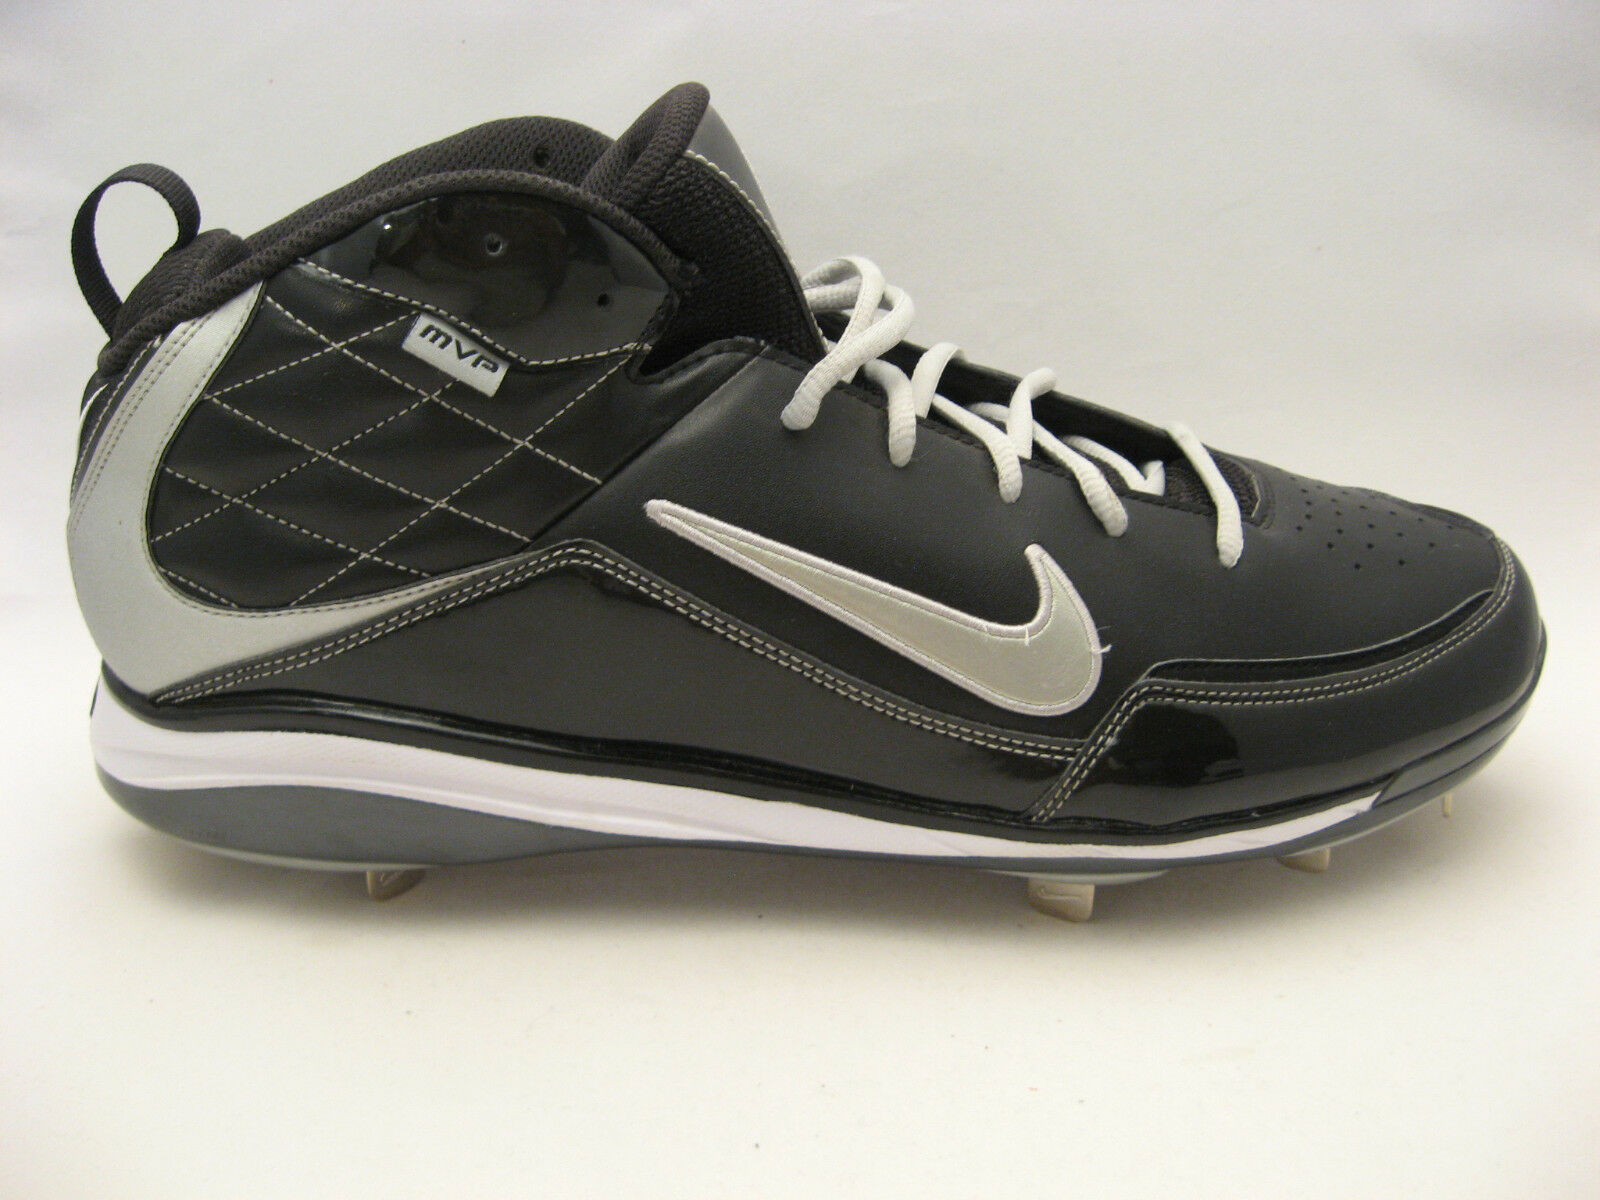 Nike Mens Air Max MVP Metal Baseball Cleats Comfortable best-selling model of the brand